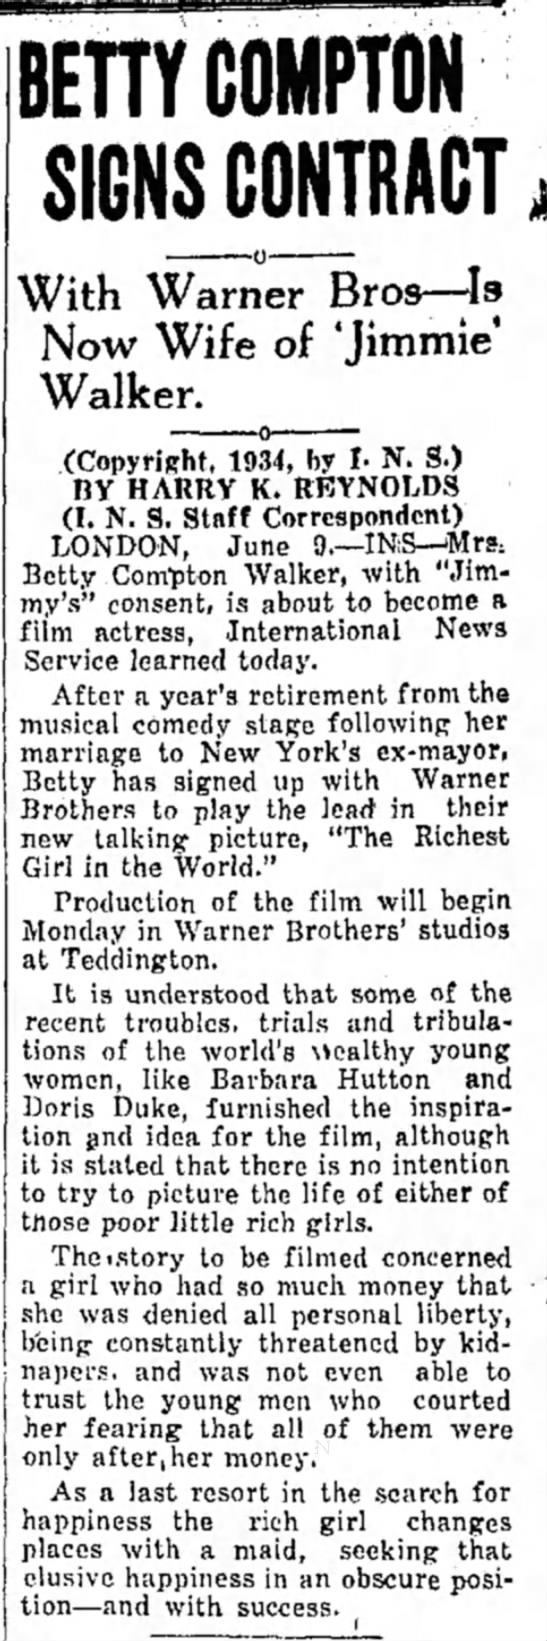 compton-18 - BETTY COMPTON SIGNS CONTRACT With Warner Bros—...